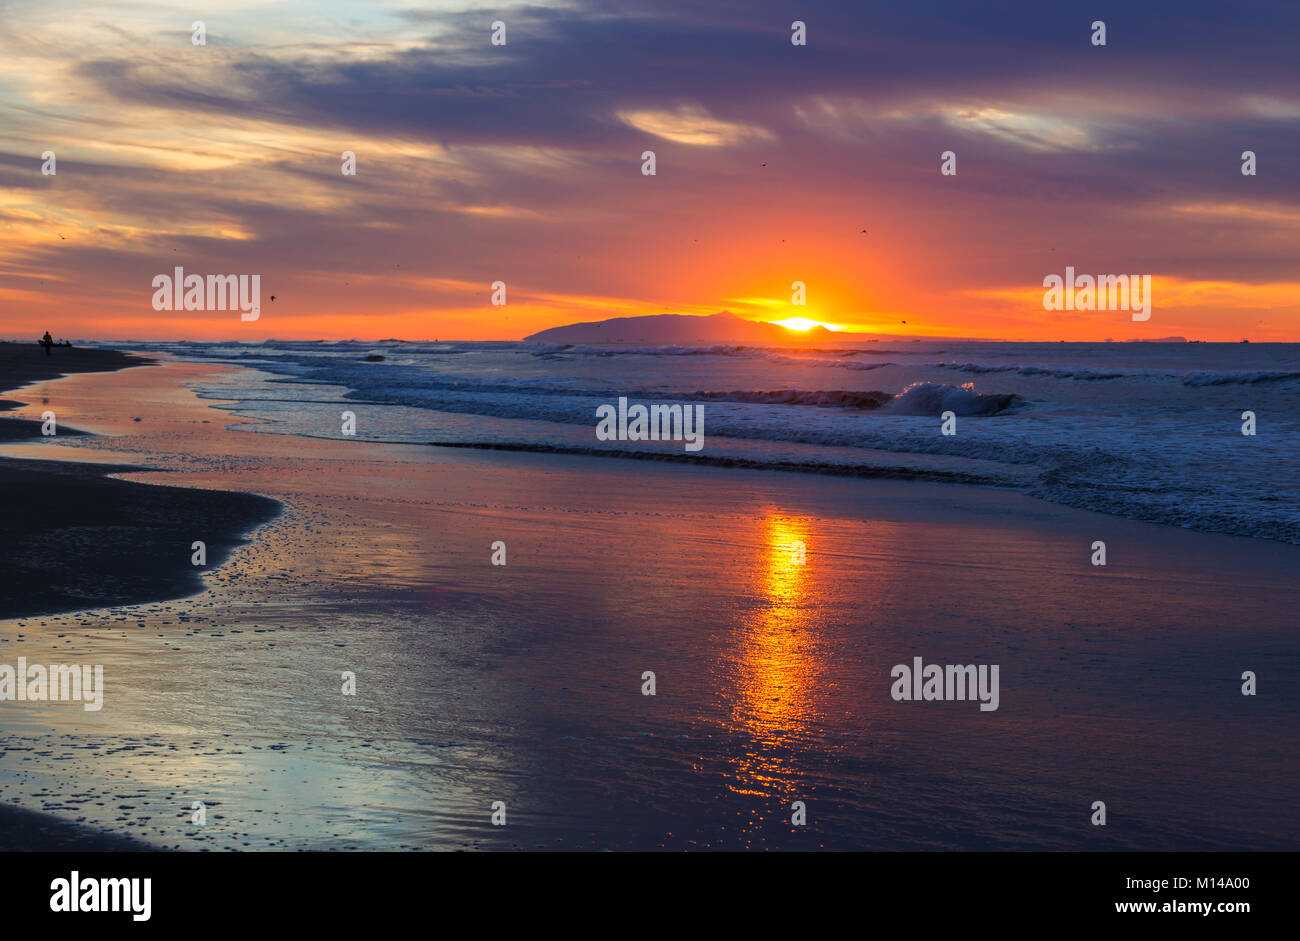 scenic colorful sunset at the sea coast. good for wallpaper or stock